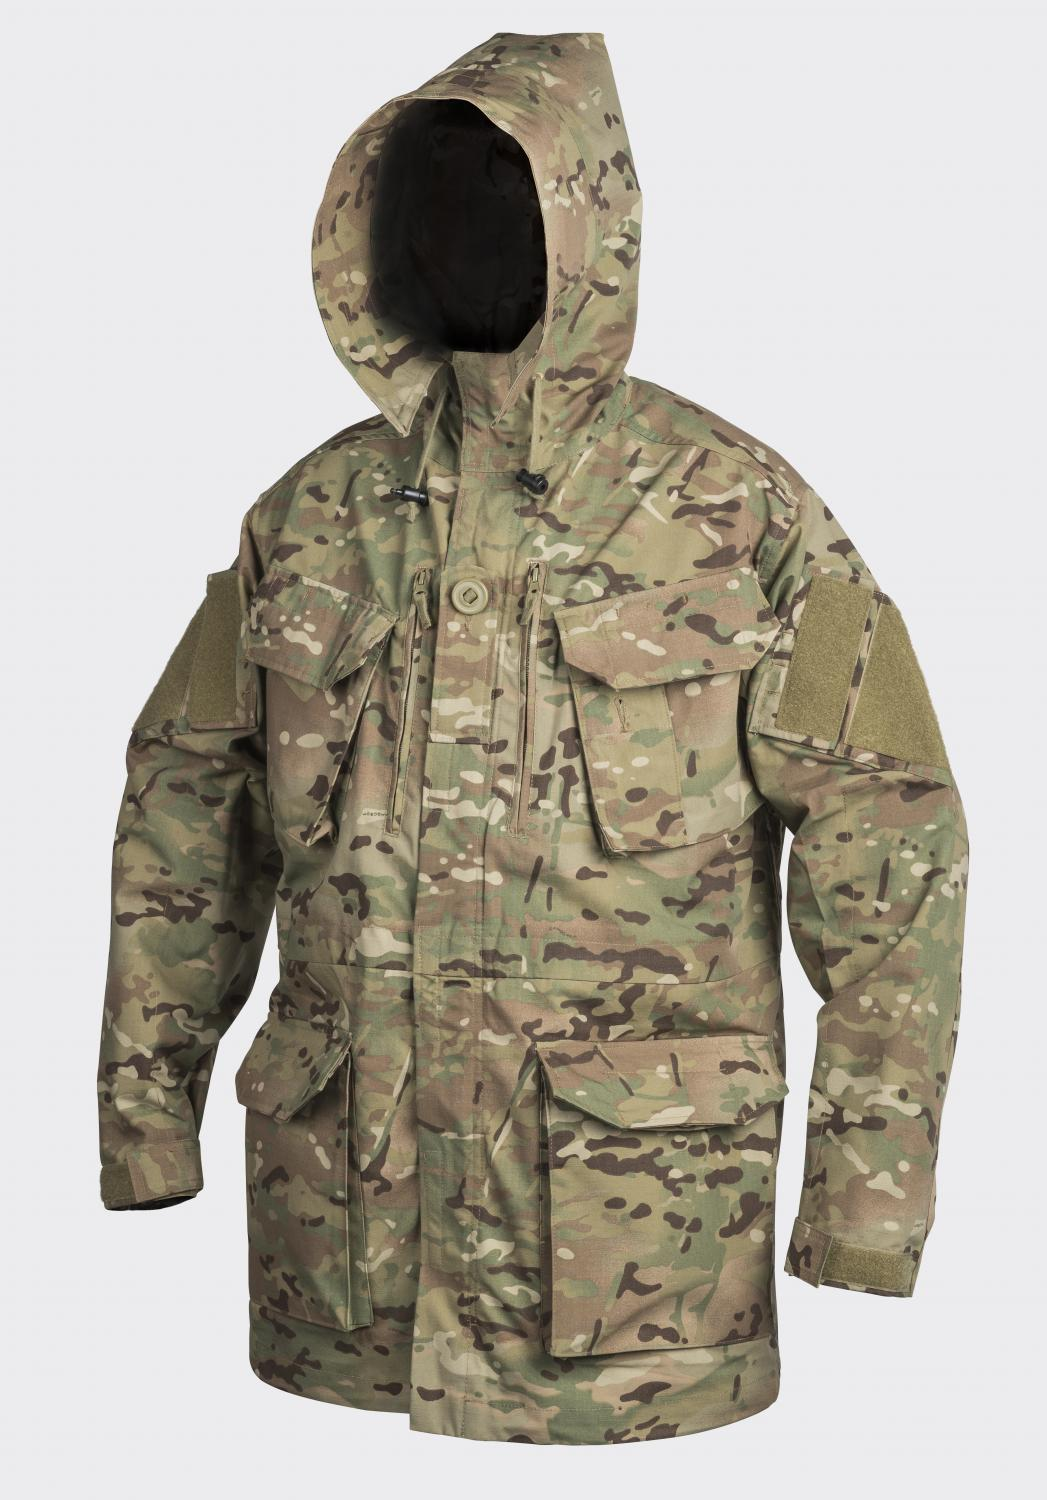 PCS (Personal Clothing System Smock) Camogrom